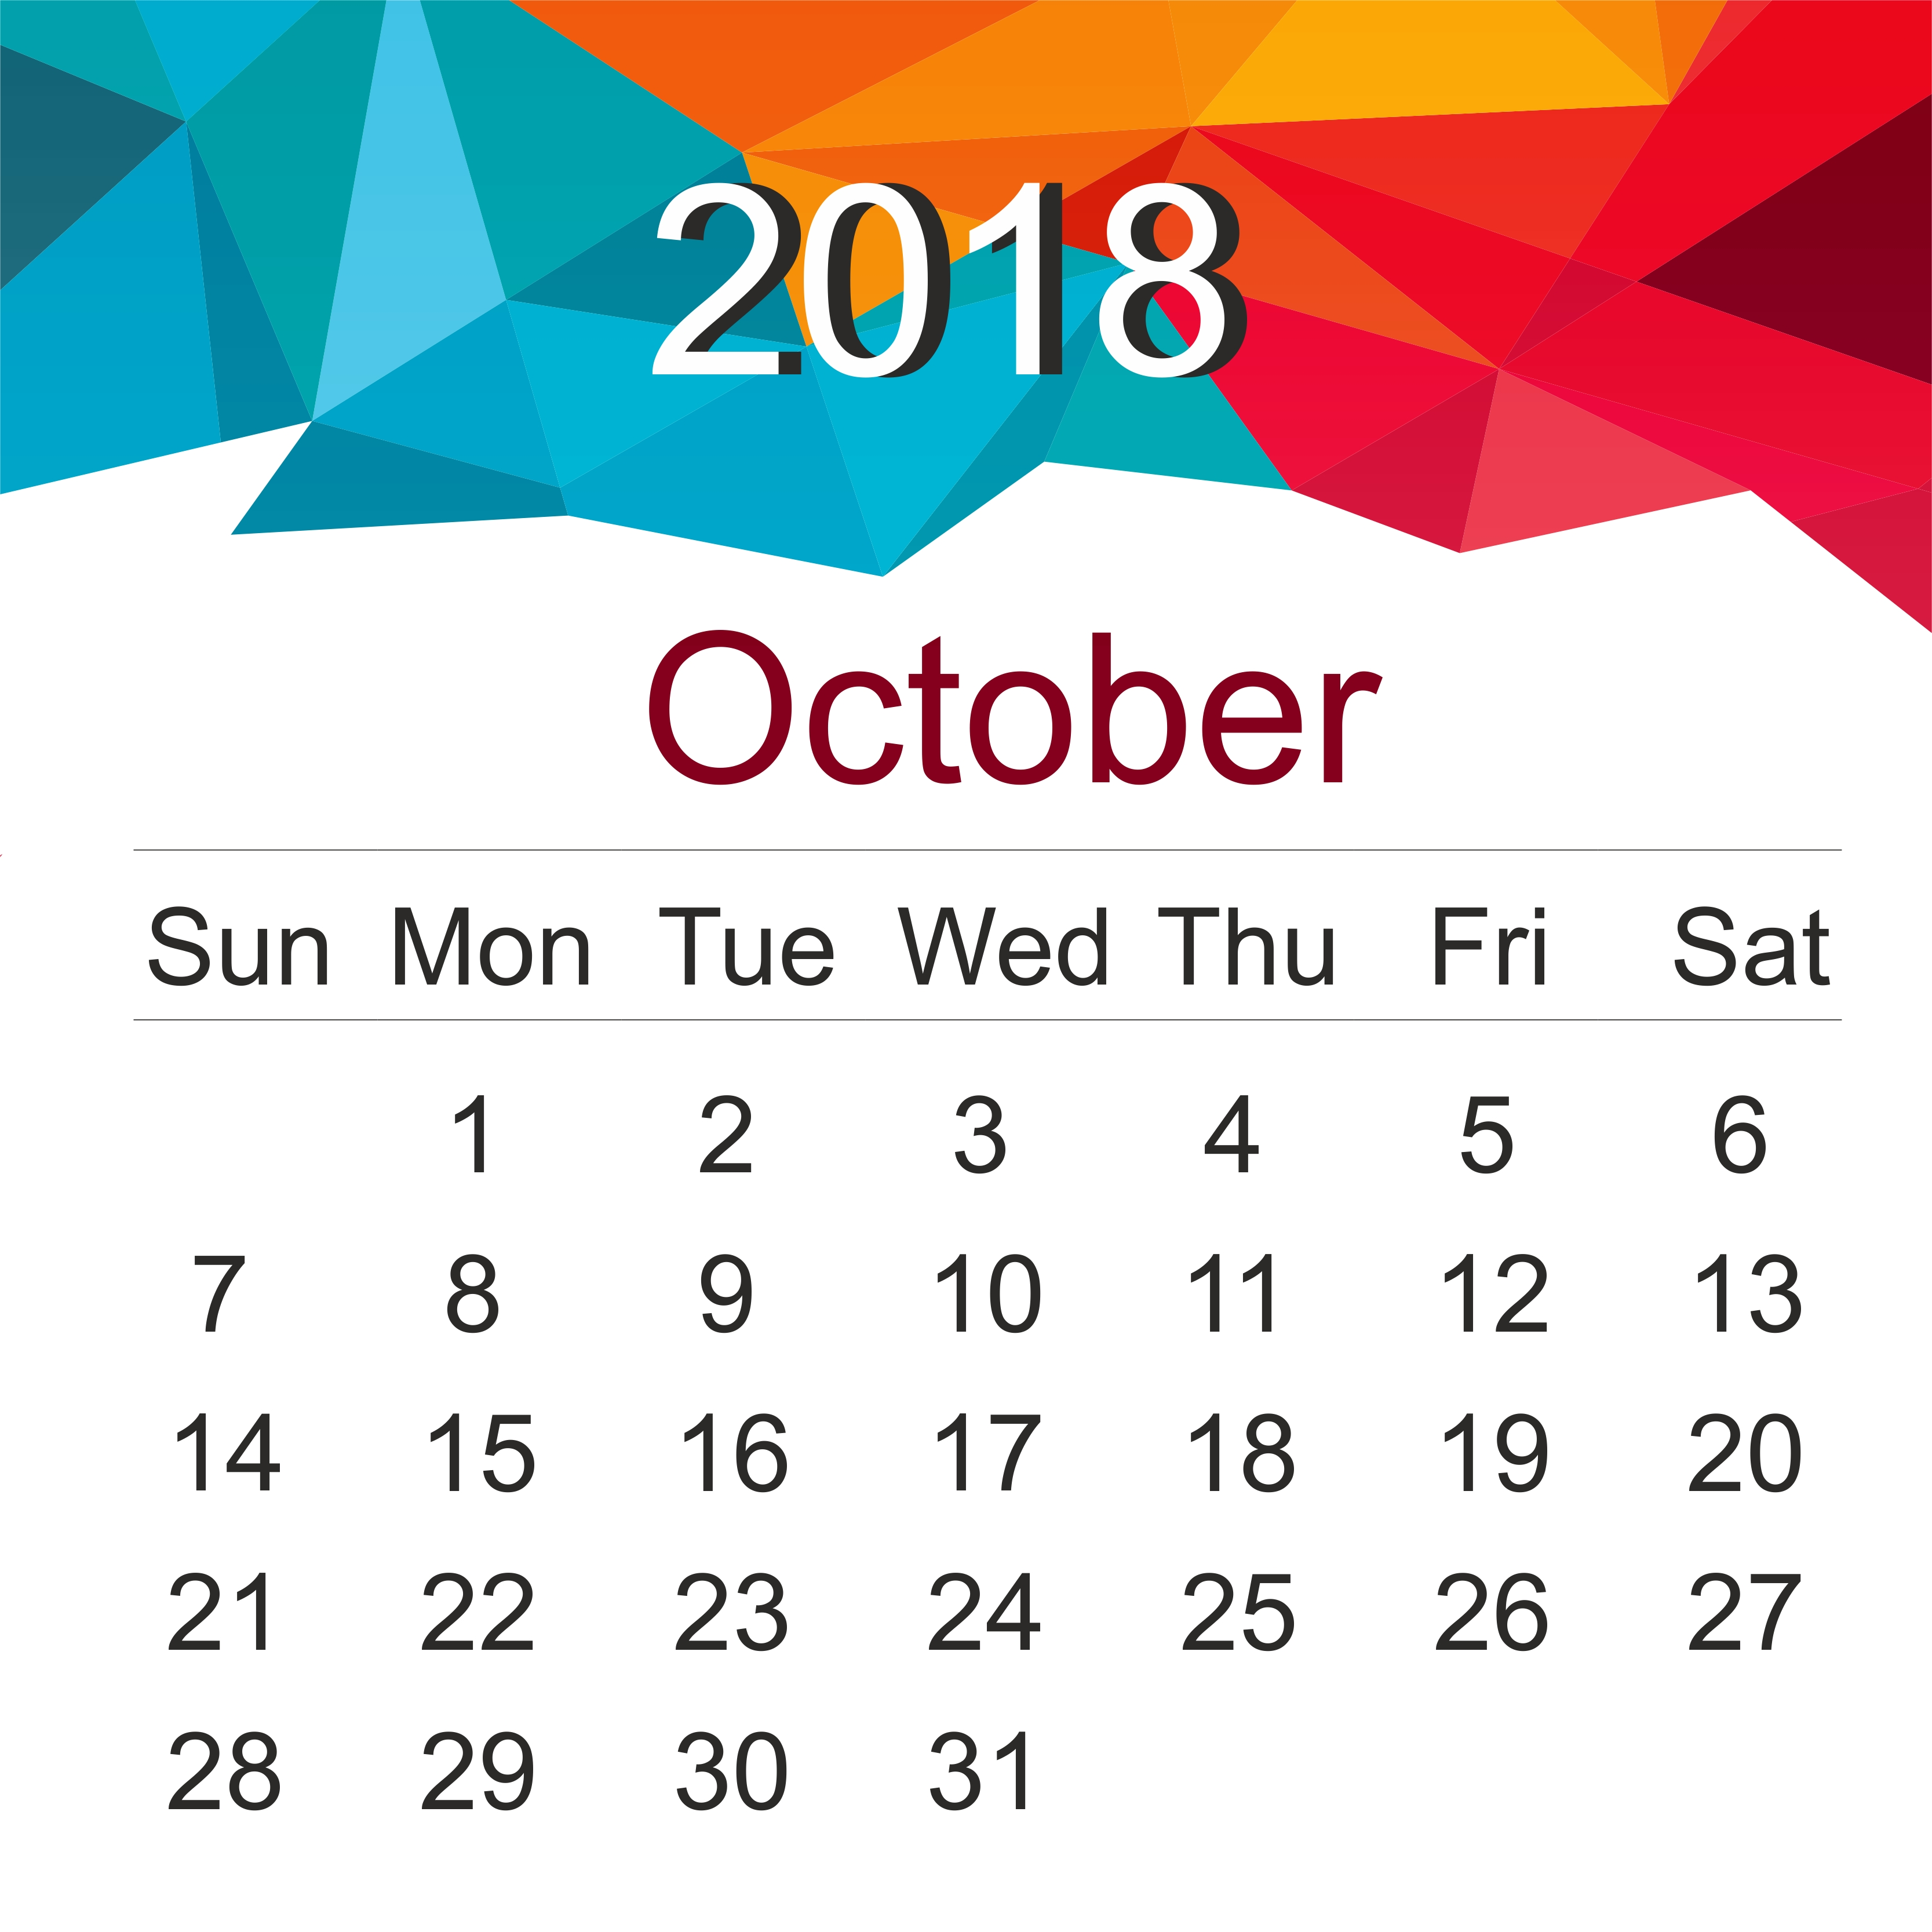 download free october 2018 landscape portrait calendar template Calendar October 2018 Template erdferdf